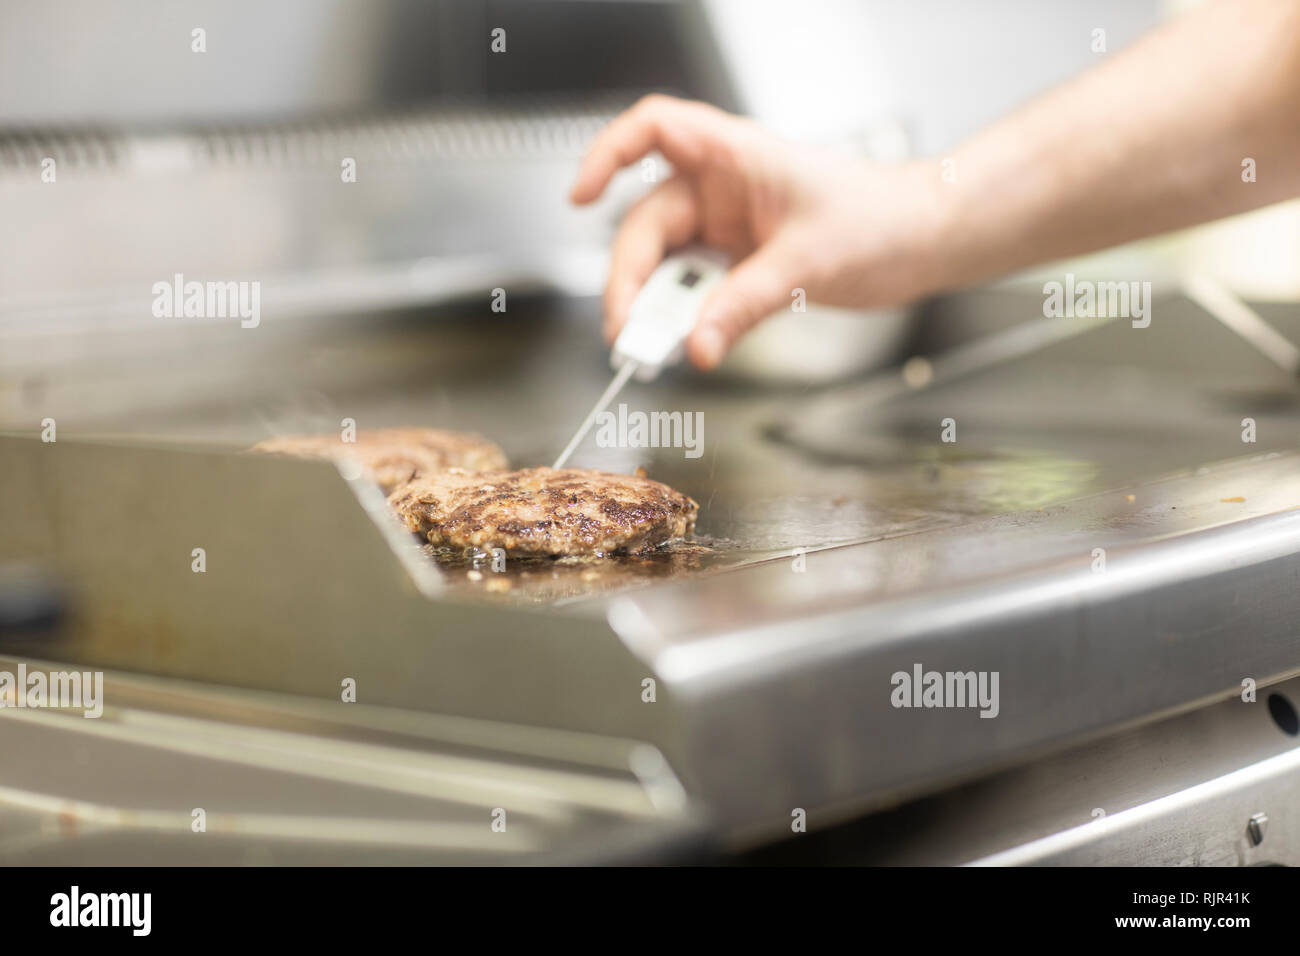 Fast food worker taking burger temperature in commercial kitchen, close up of hand - Stock Image